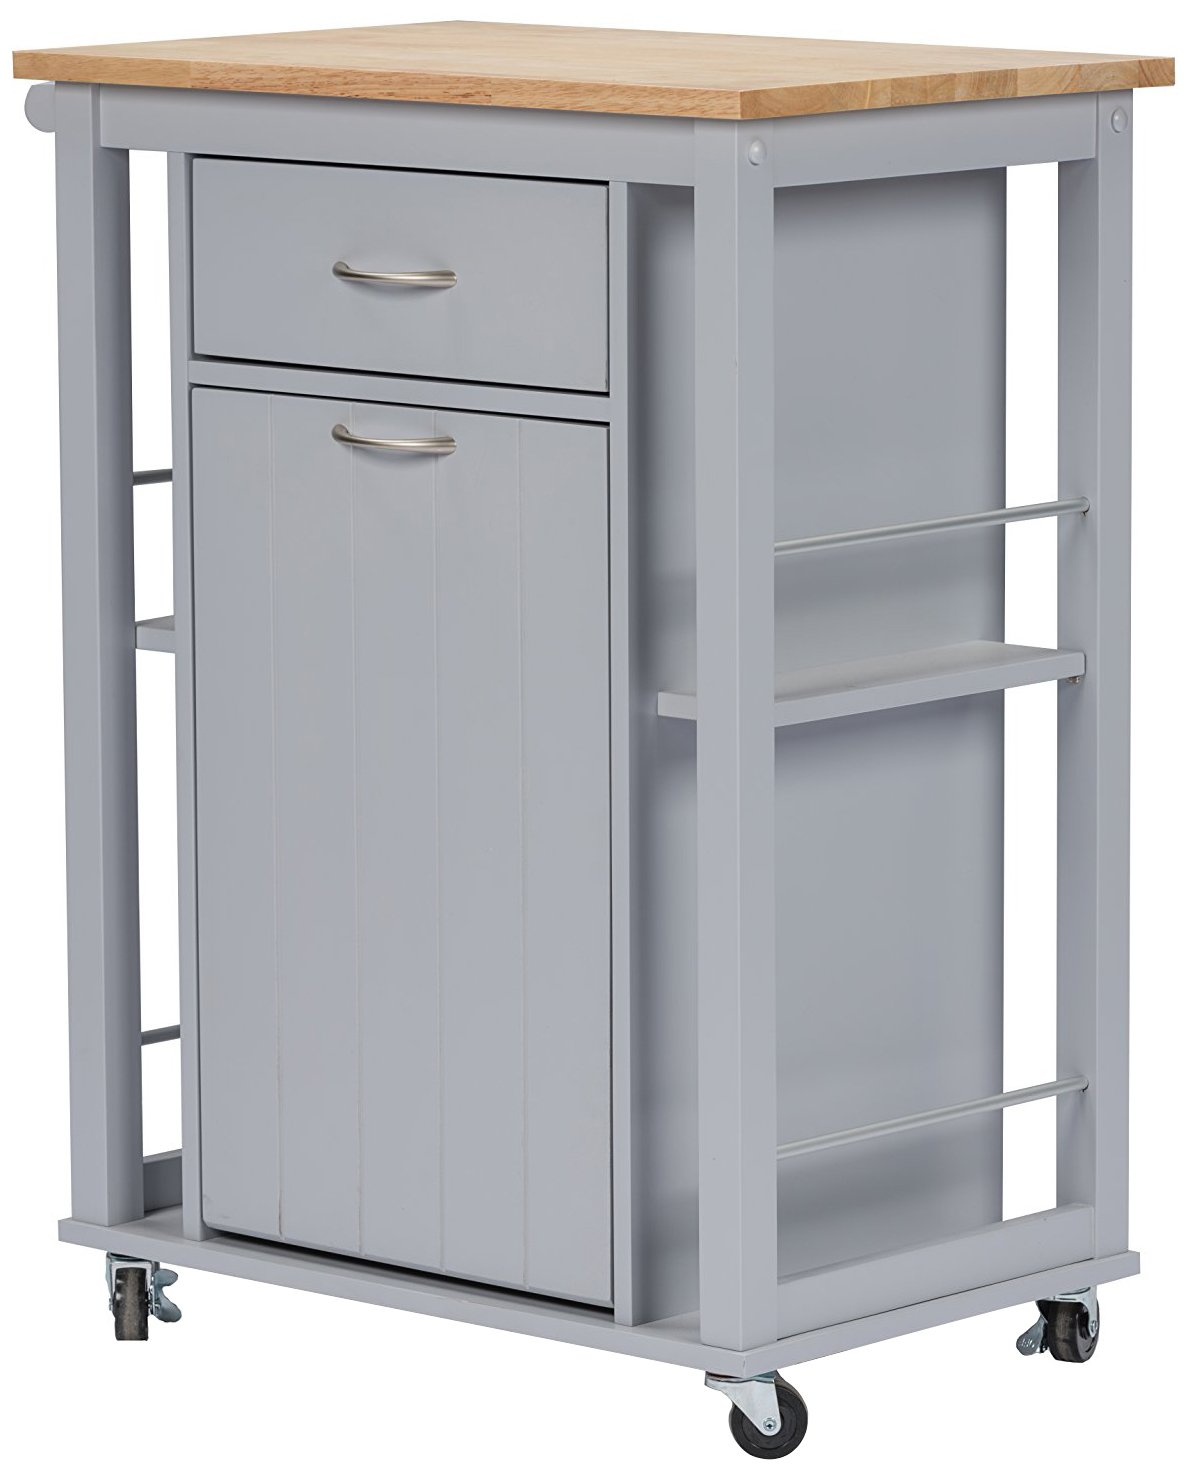 Baxton Studio Yonkers Kitchen Cart